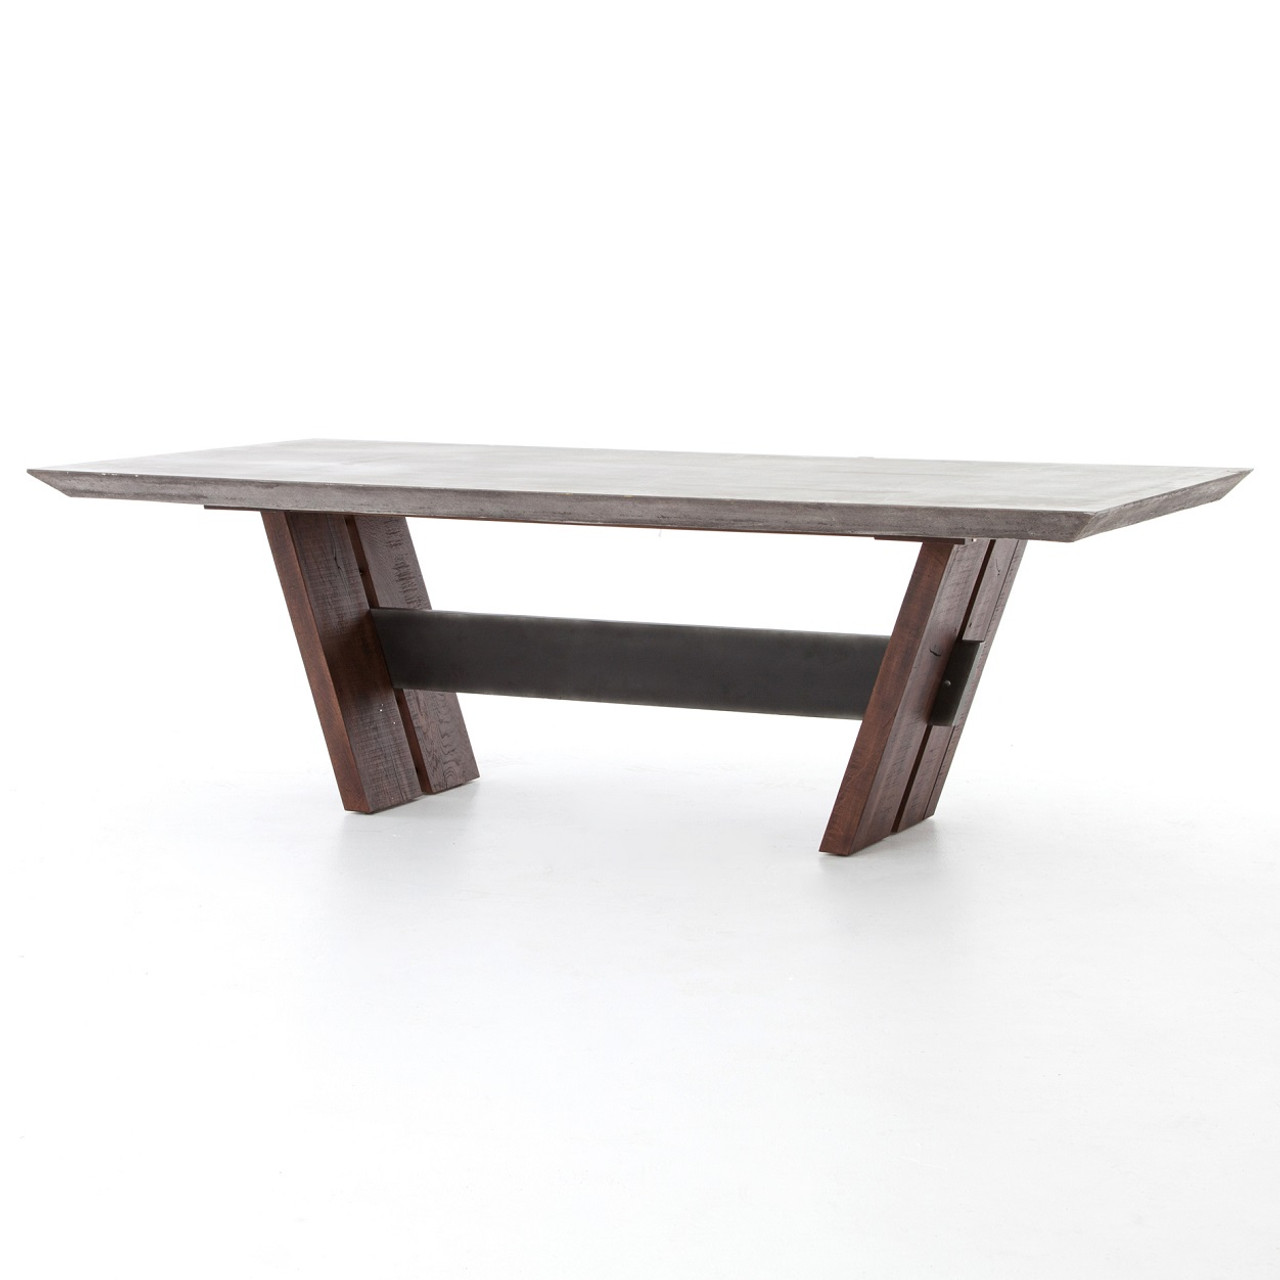 Bonham reclaimed wood and concrete top dining table 78